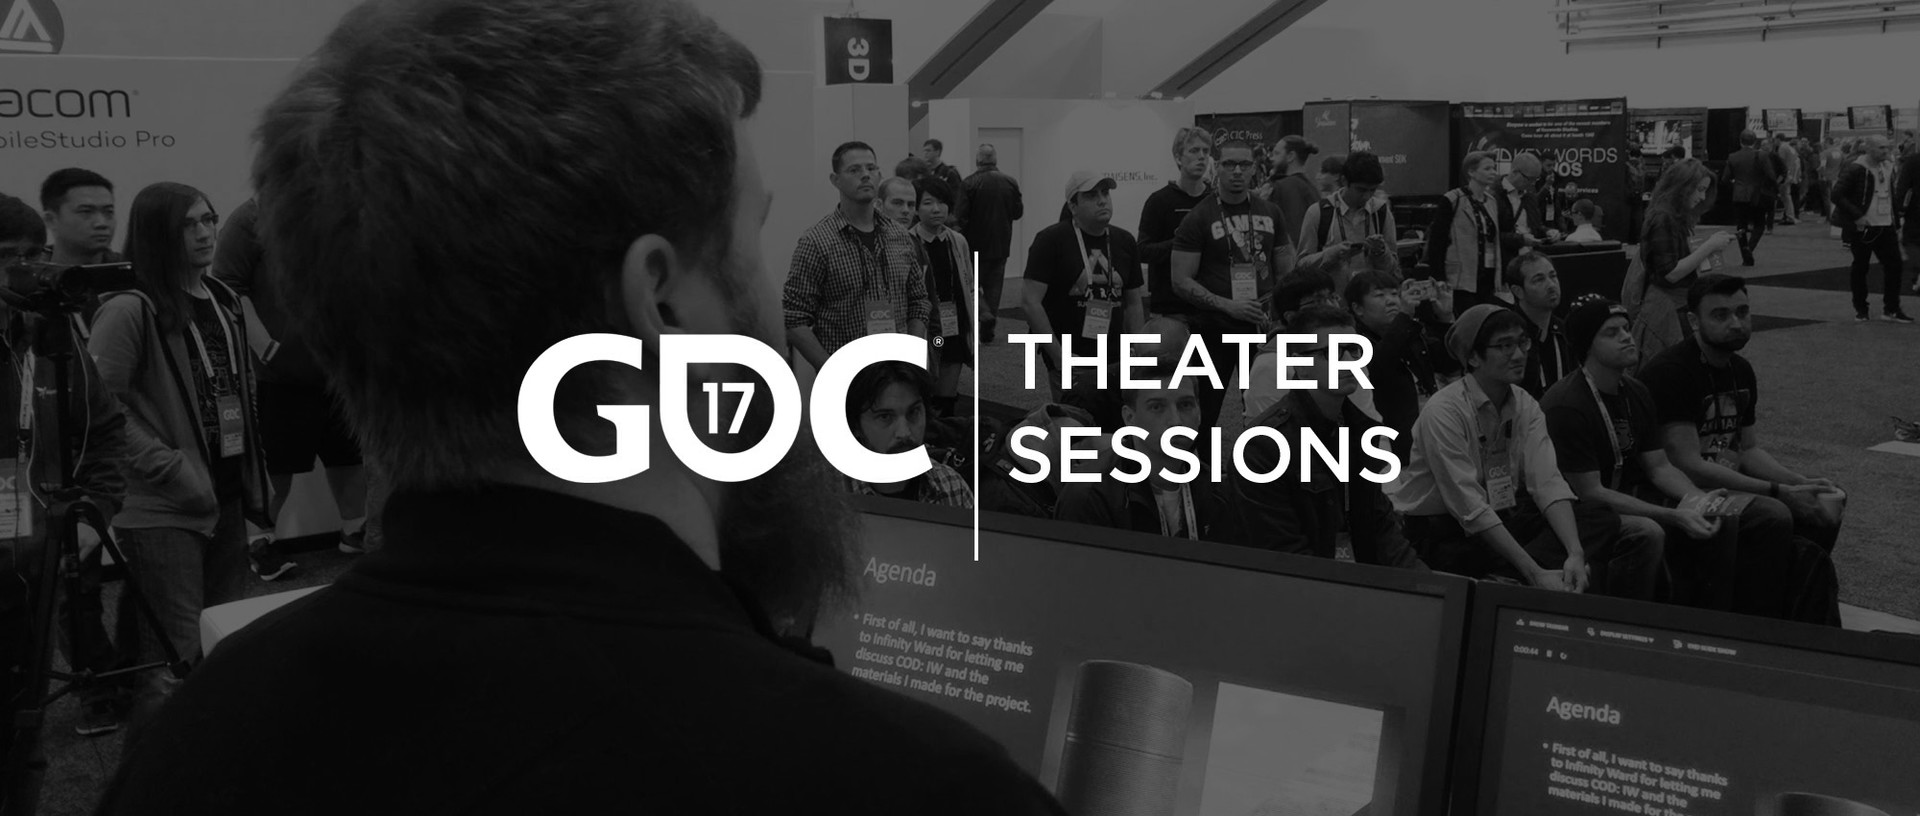 Joshua lynch joshlynch callofduty gdc blog bw